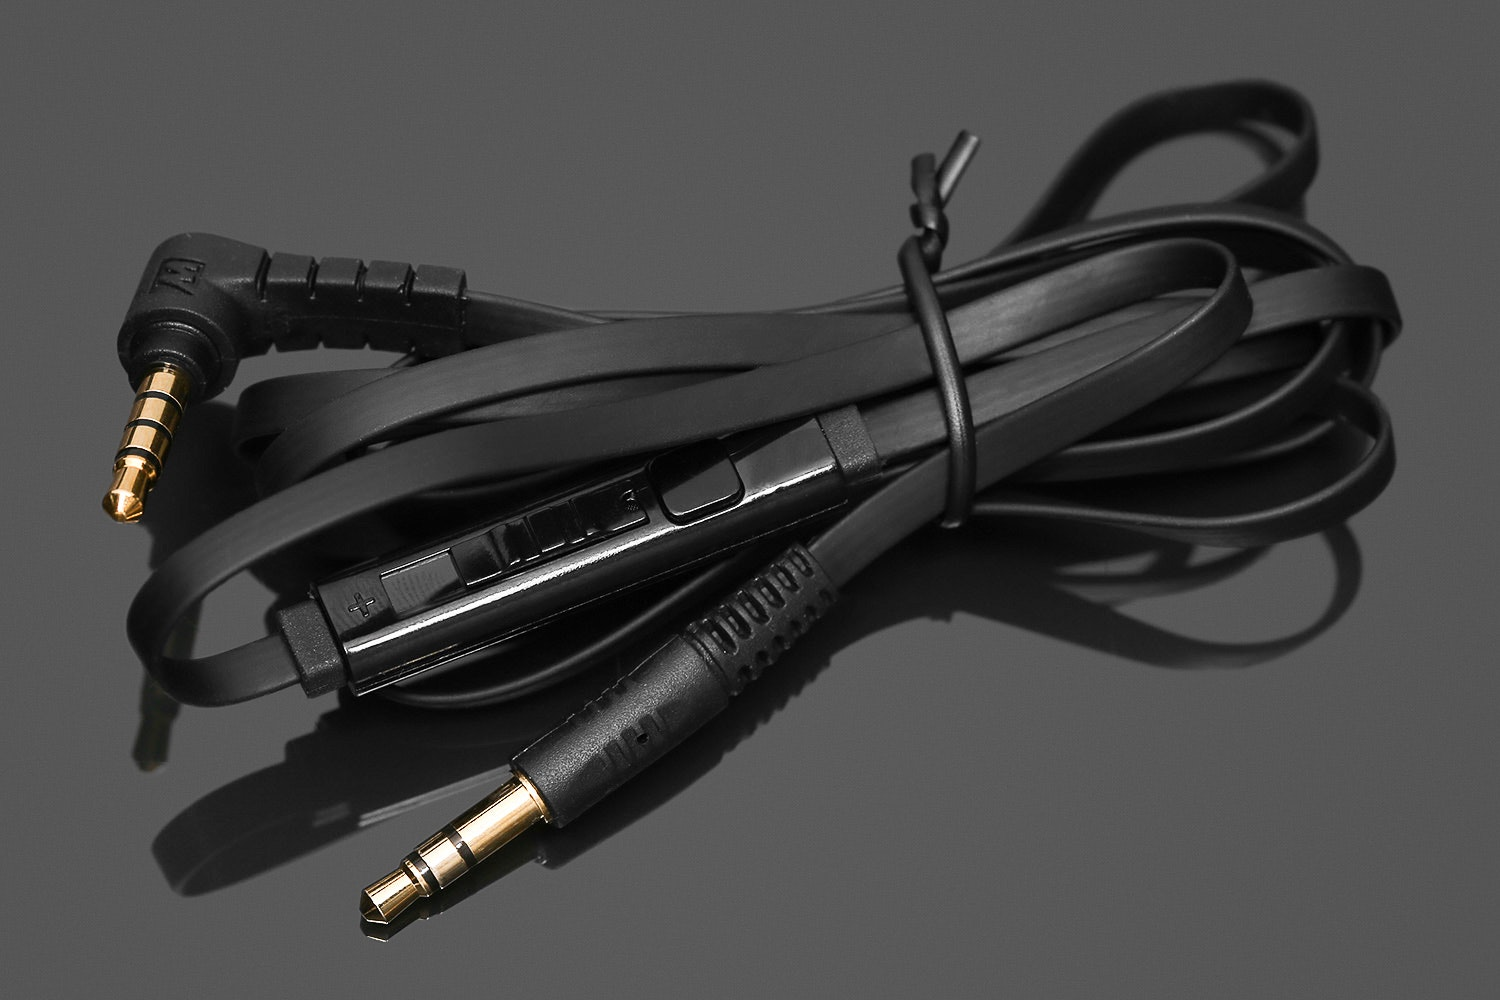 MEE Audio 3.5mm Headset Cable With In-Line Remote